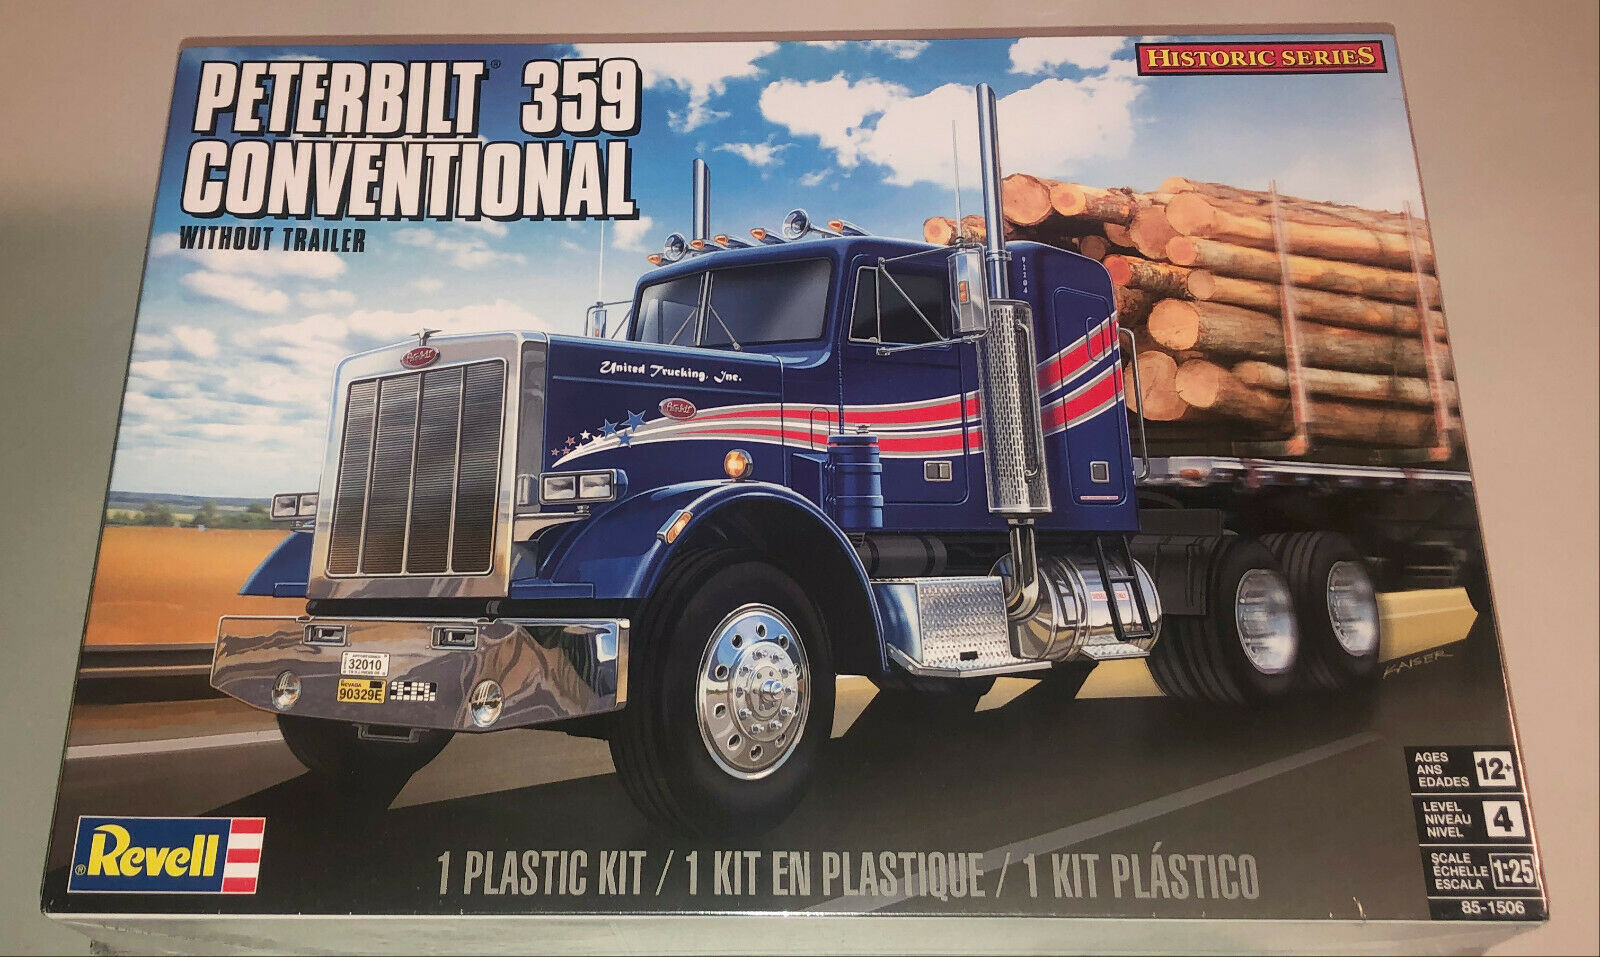 Peterbilt 359 Conventional 1 25 Scale Revell Germany 7412 Release For Sale Online Ebay